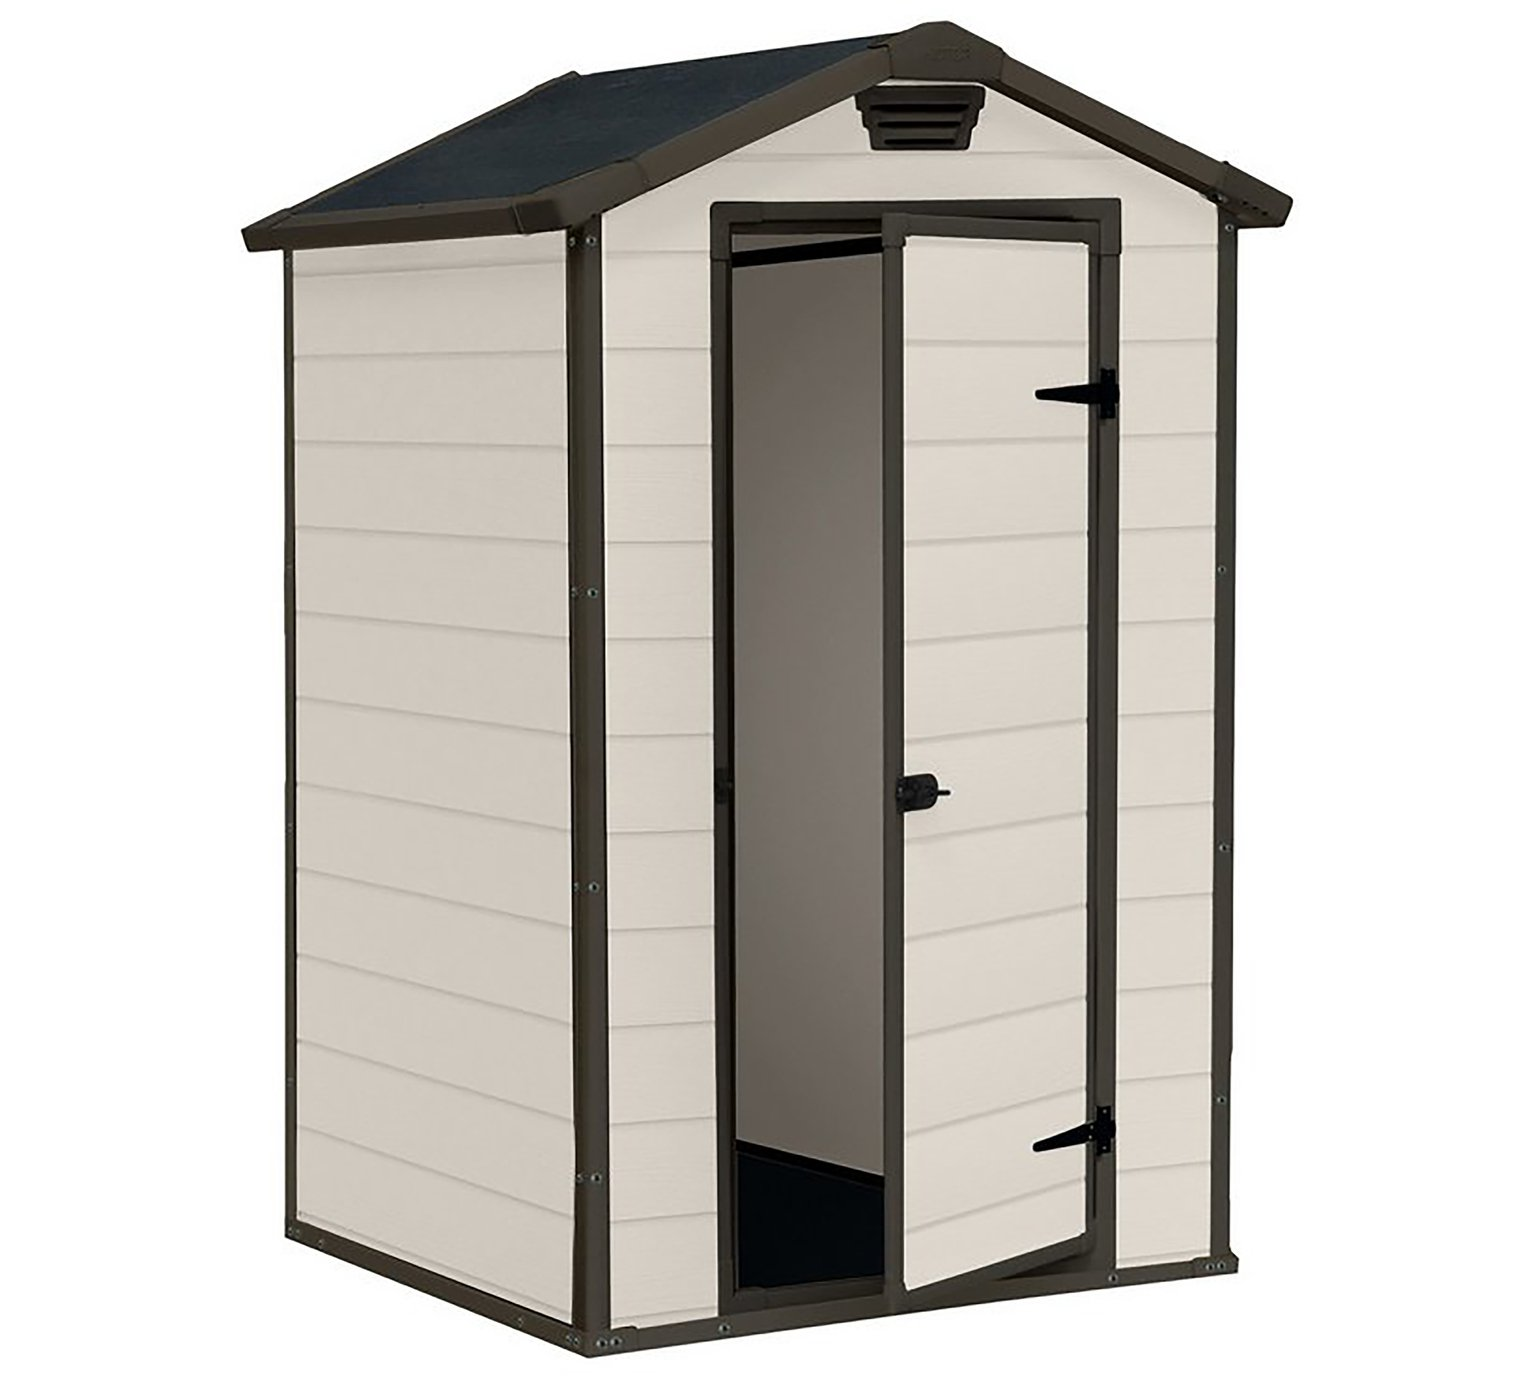 Keter Manor Apex Garden Storage Shed 4 x 3ft - Beige/Brown